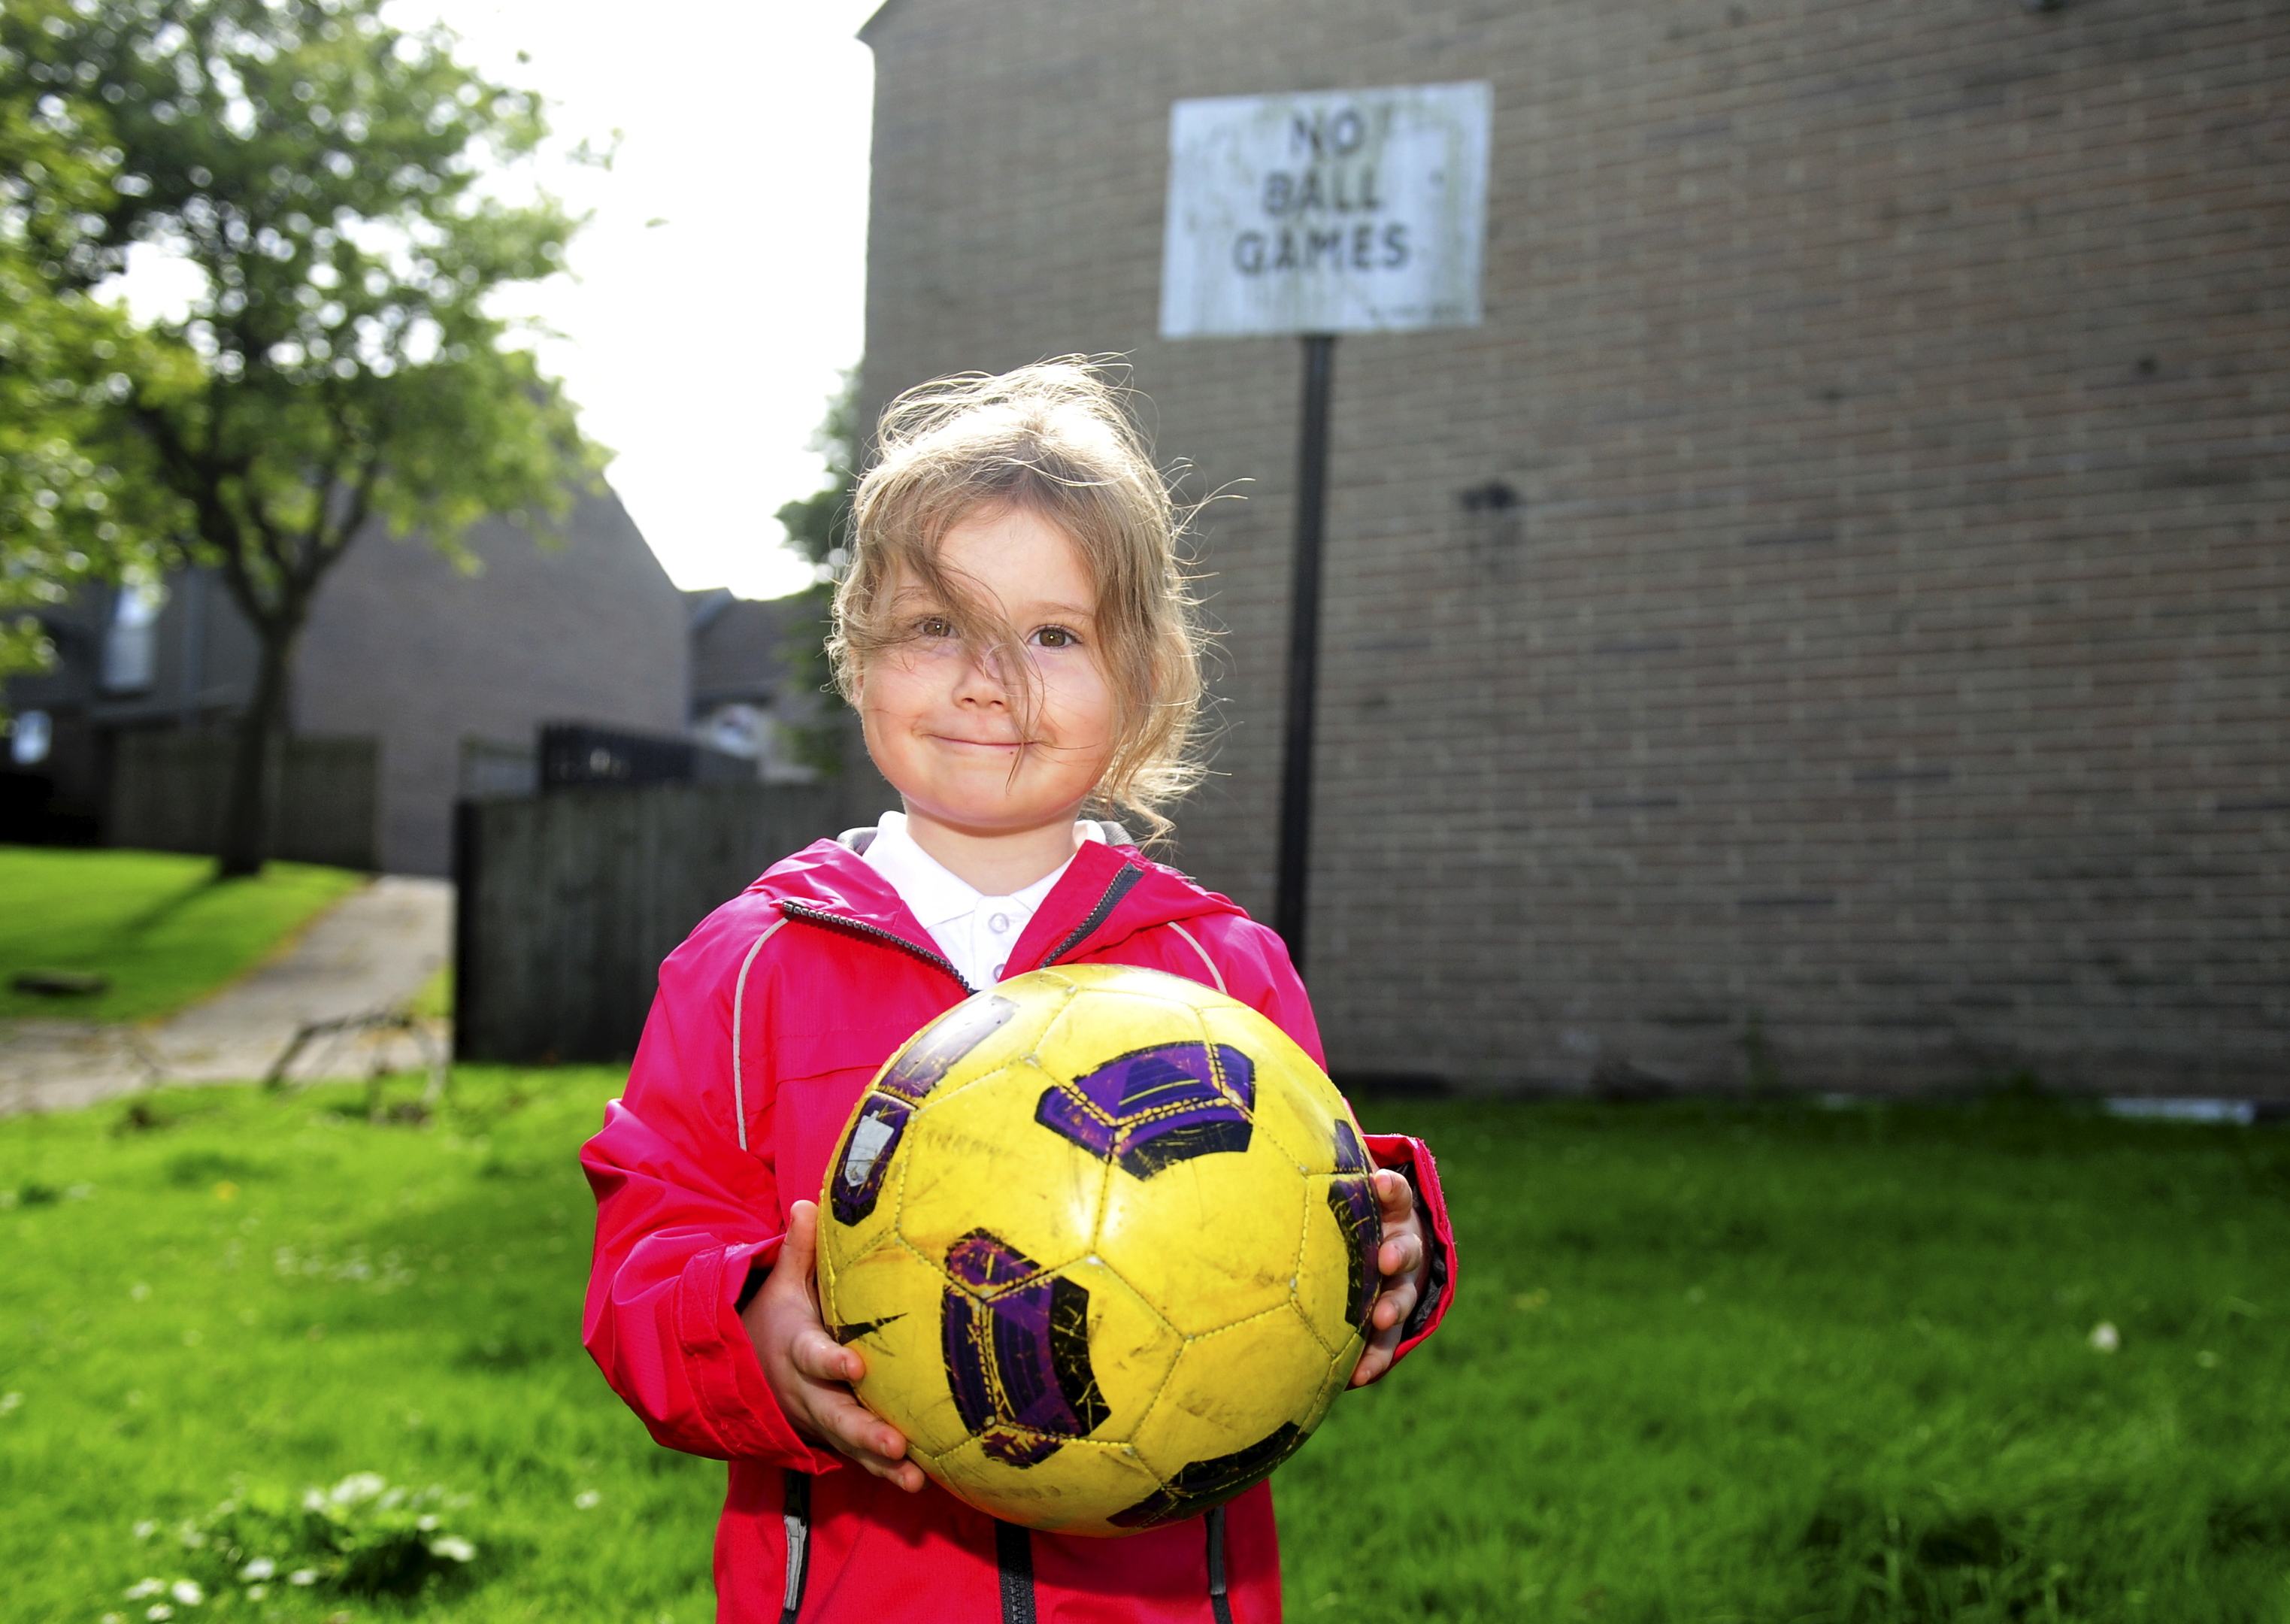 """Kimberly Anderson, 4, plays under a  """"No Ball Games"""" sign on Gordon Mills Crescent in the city's Tillydrone."""